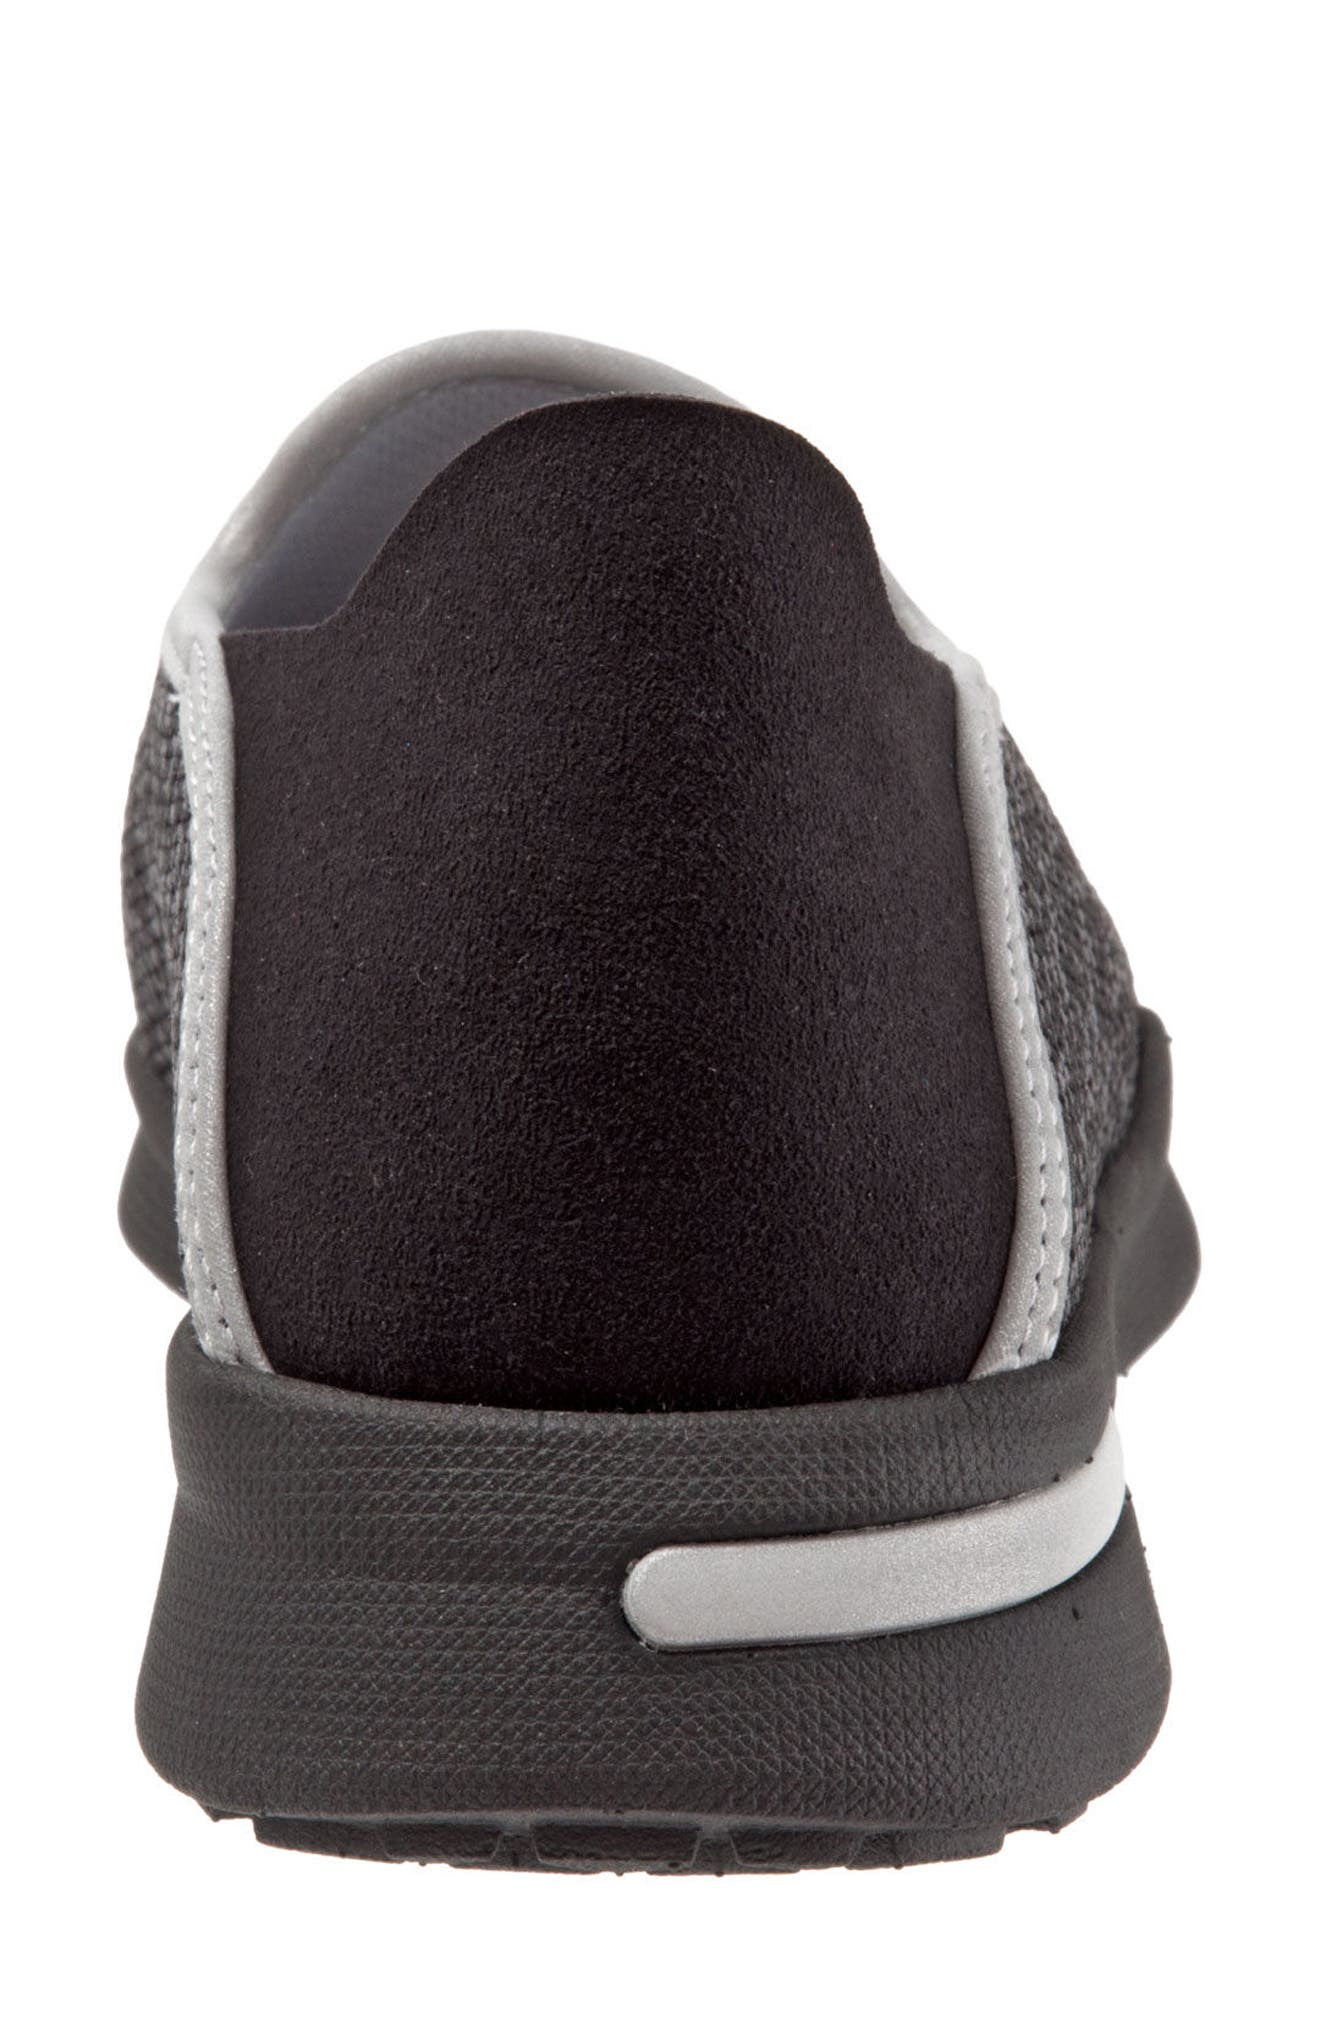 Simba Convertible Slip-On,                             Alternate thumbnail 8, color,                             BLACK FABRIC